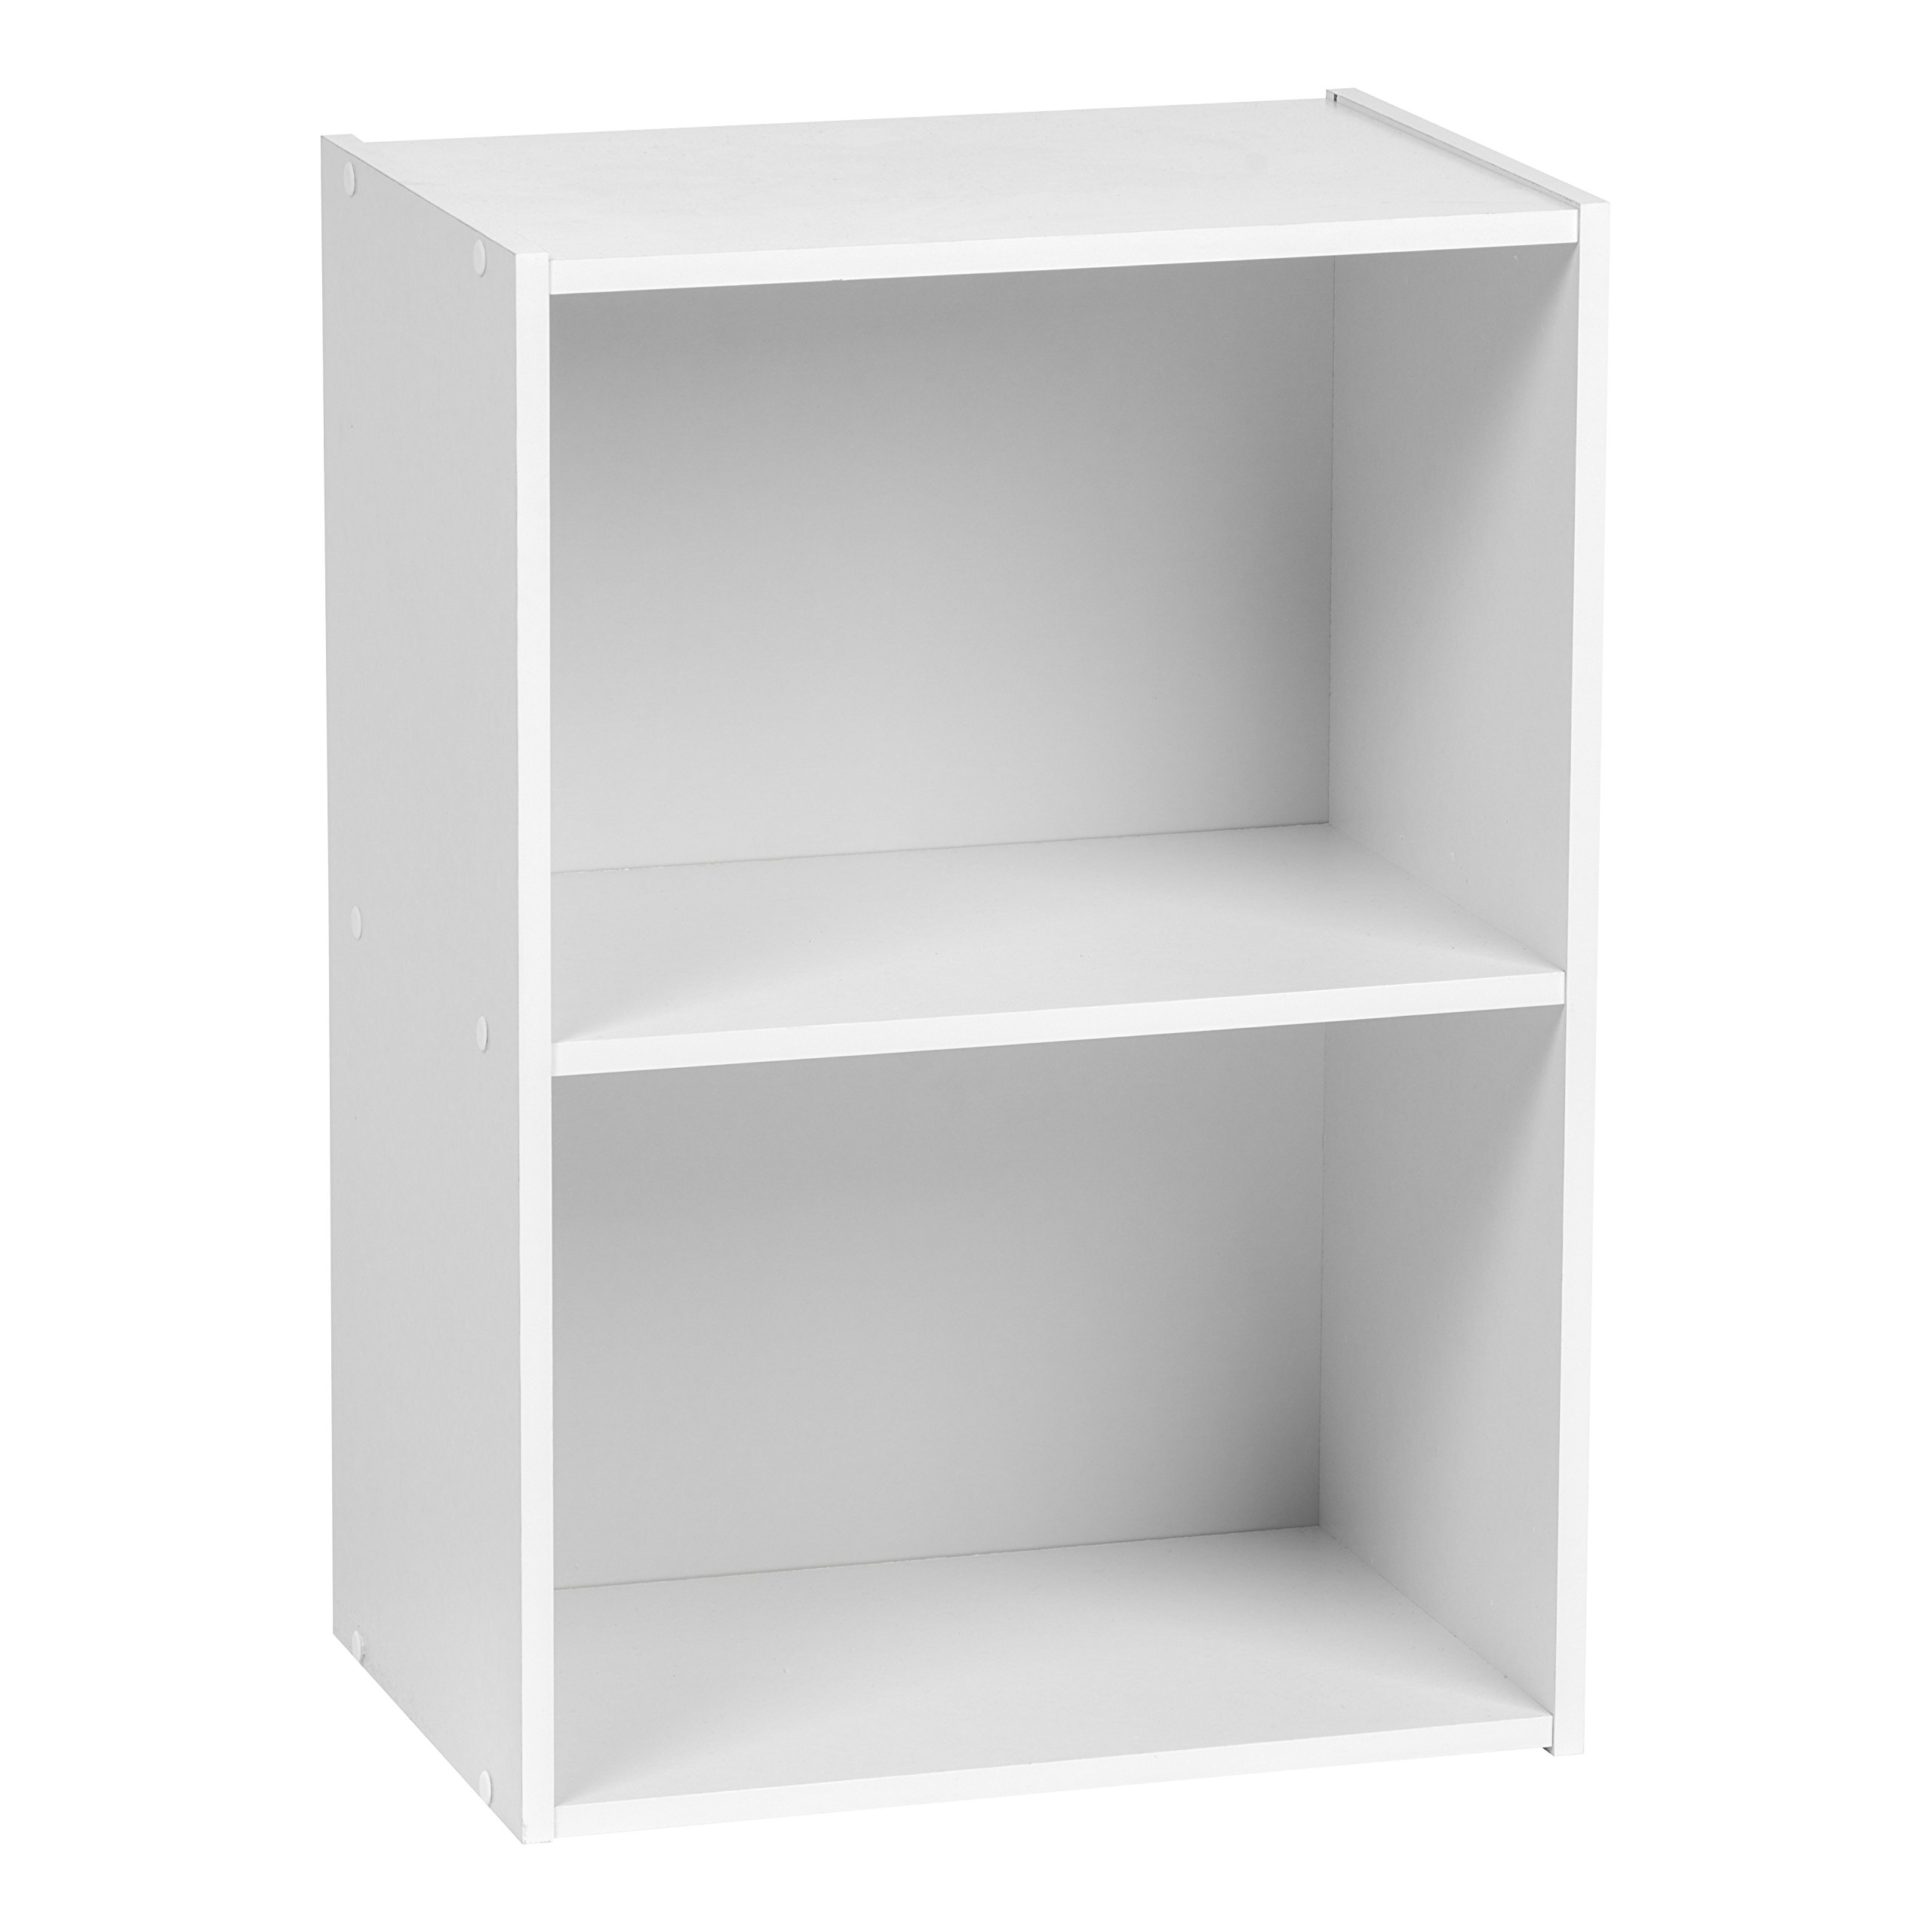 IRIS USA 596166 2-Tier Wood Storage Shelf, White by IRIS USA, Inc.